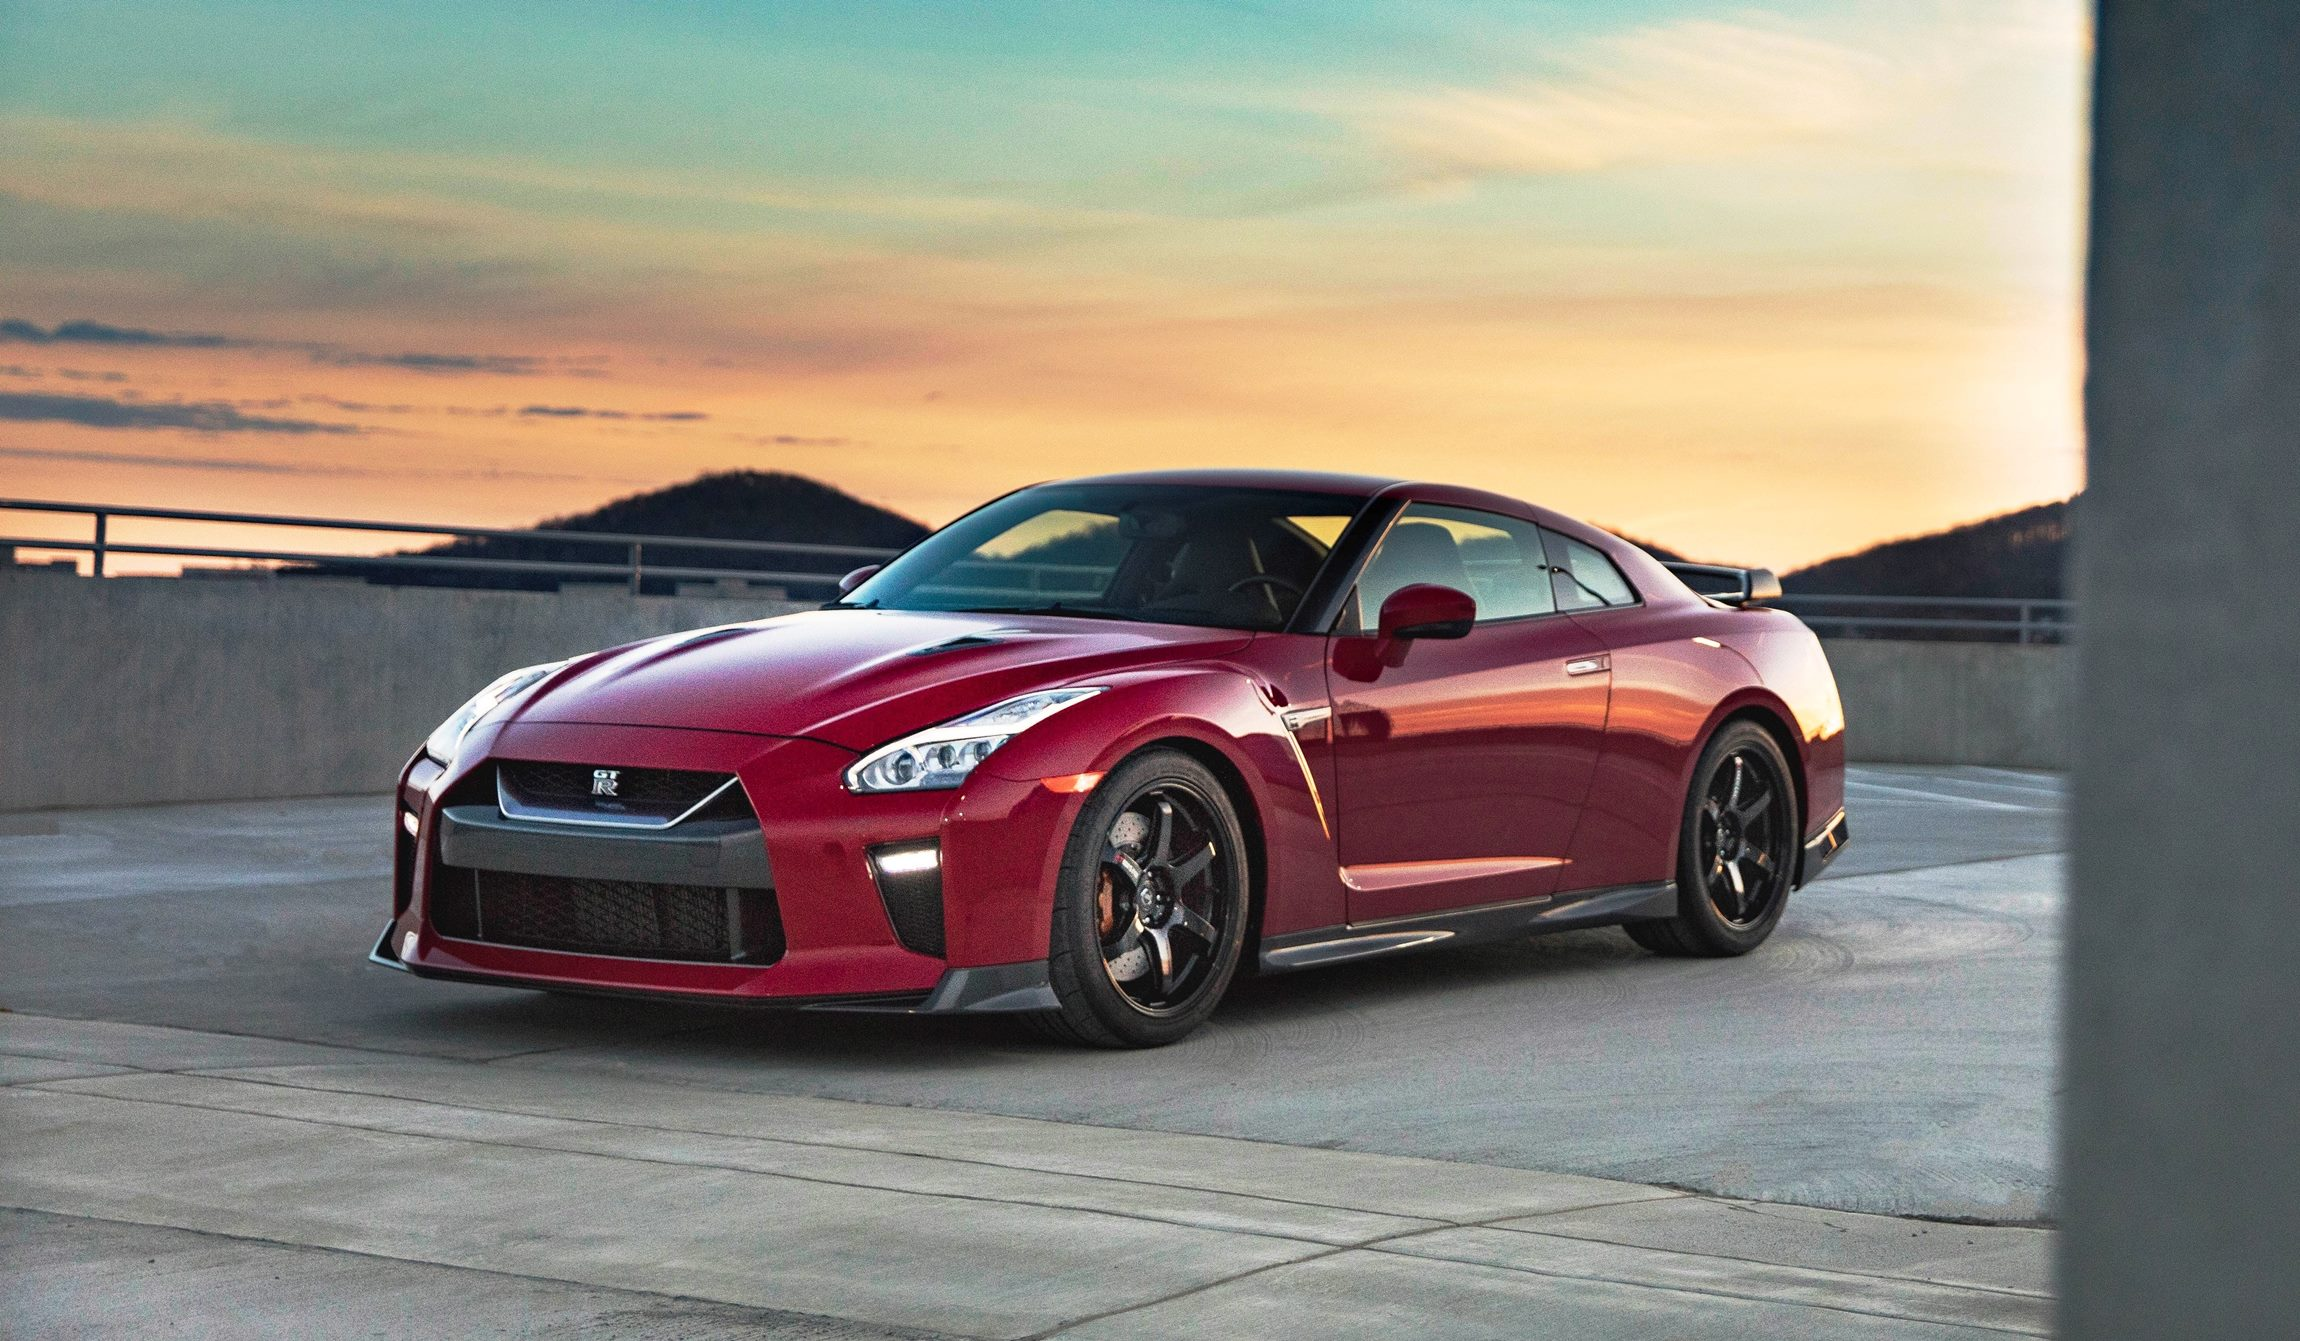 to used under blog insure gt much how r cost does male nissan it a for img gtr